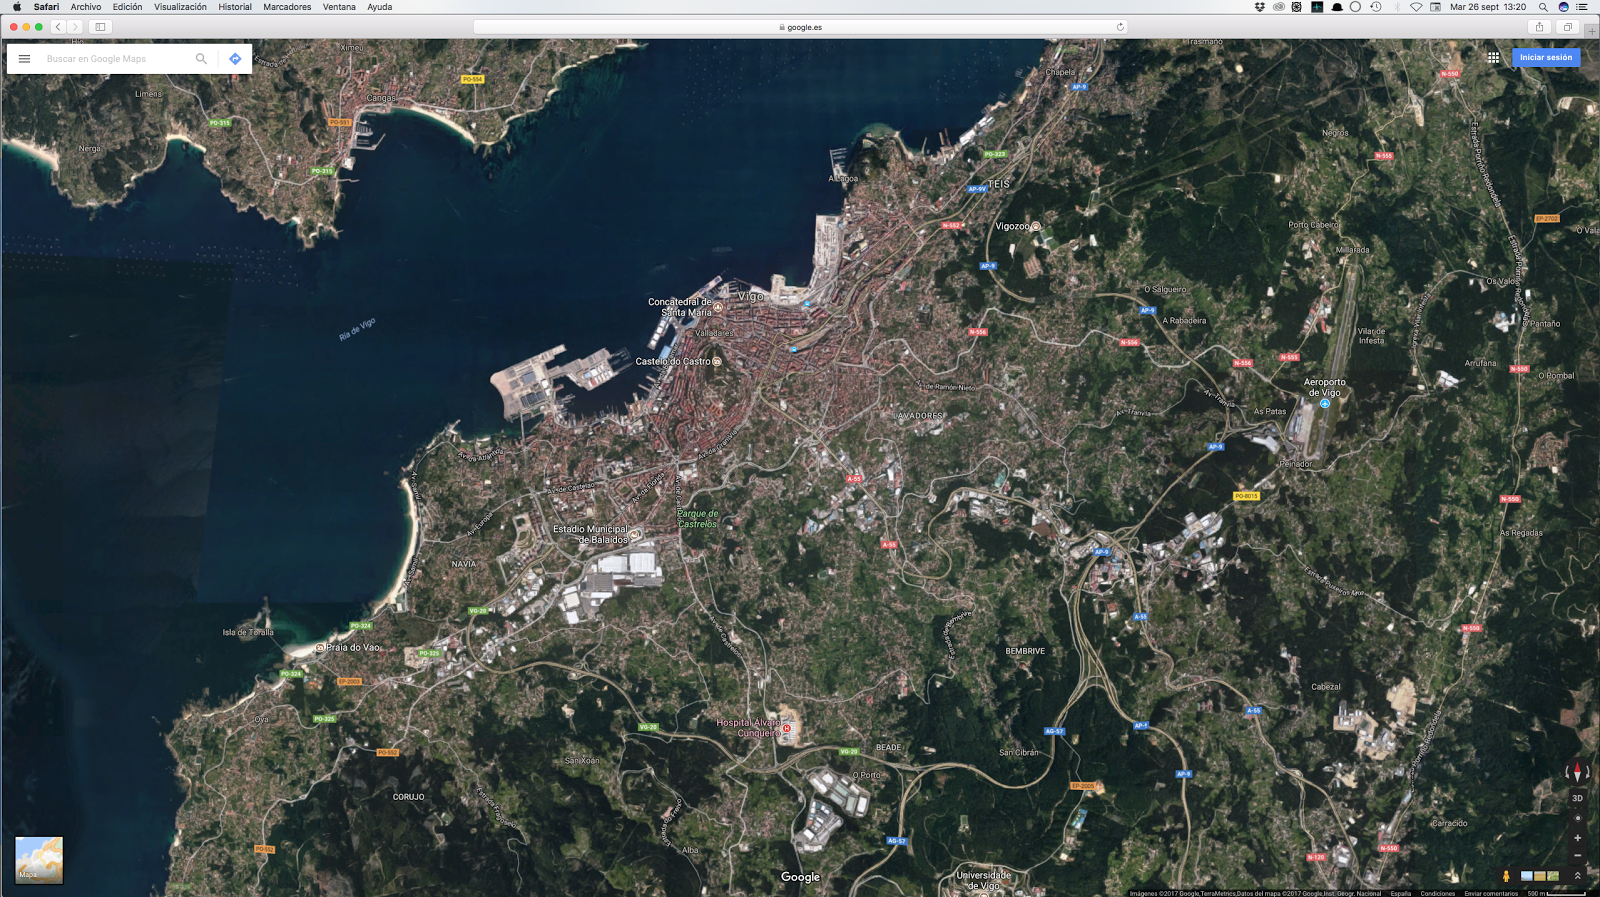 Chrome Maps on